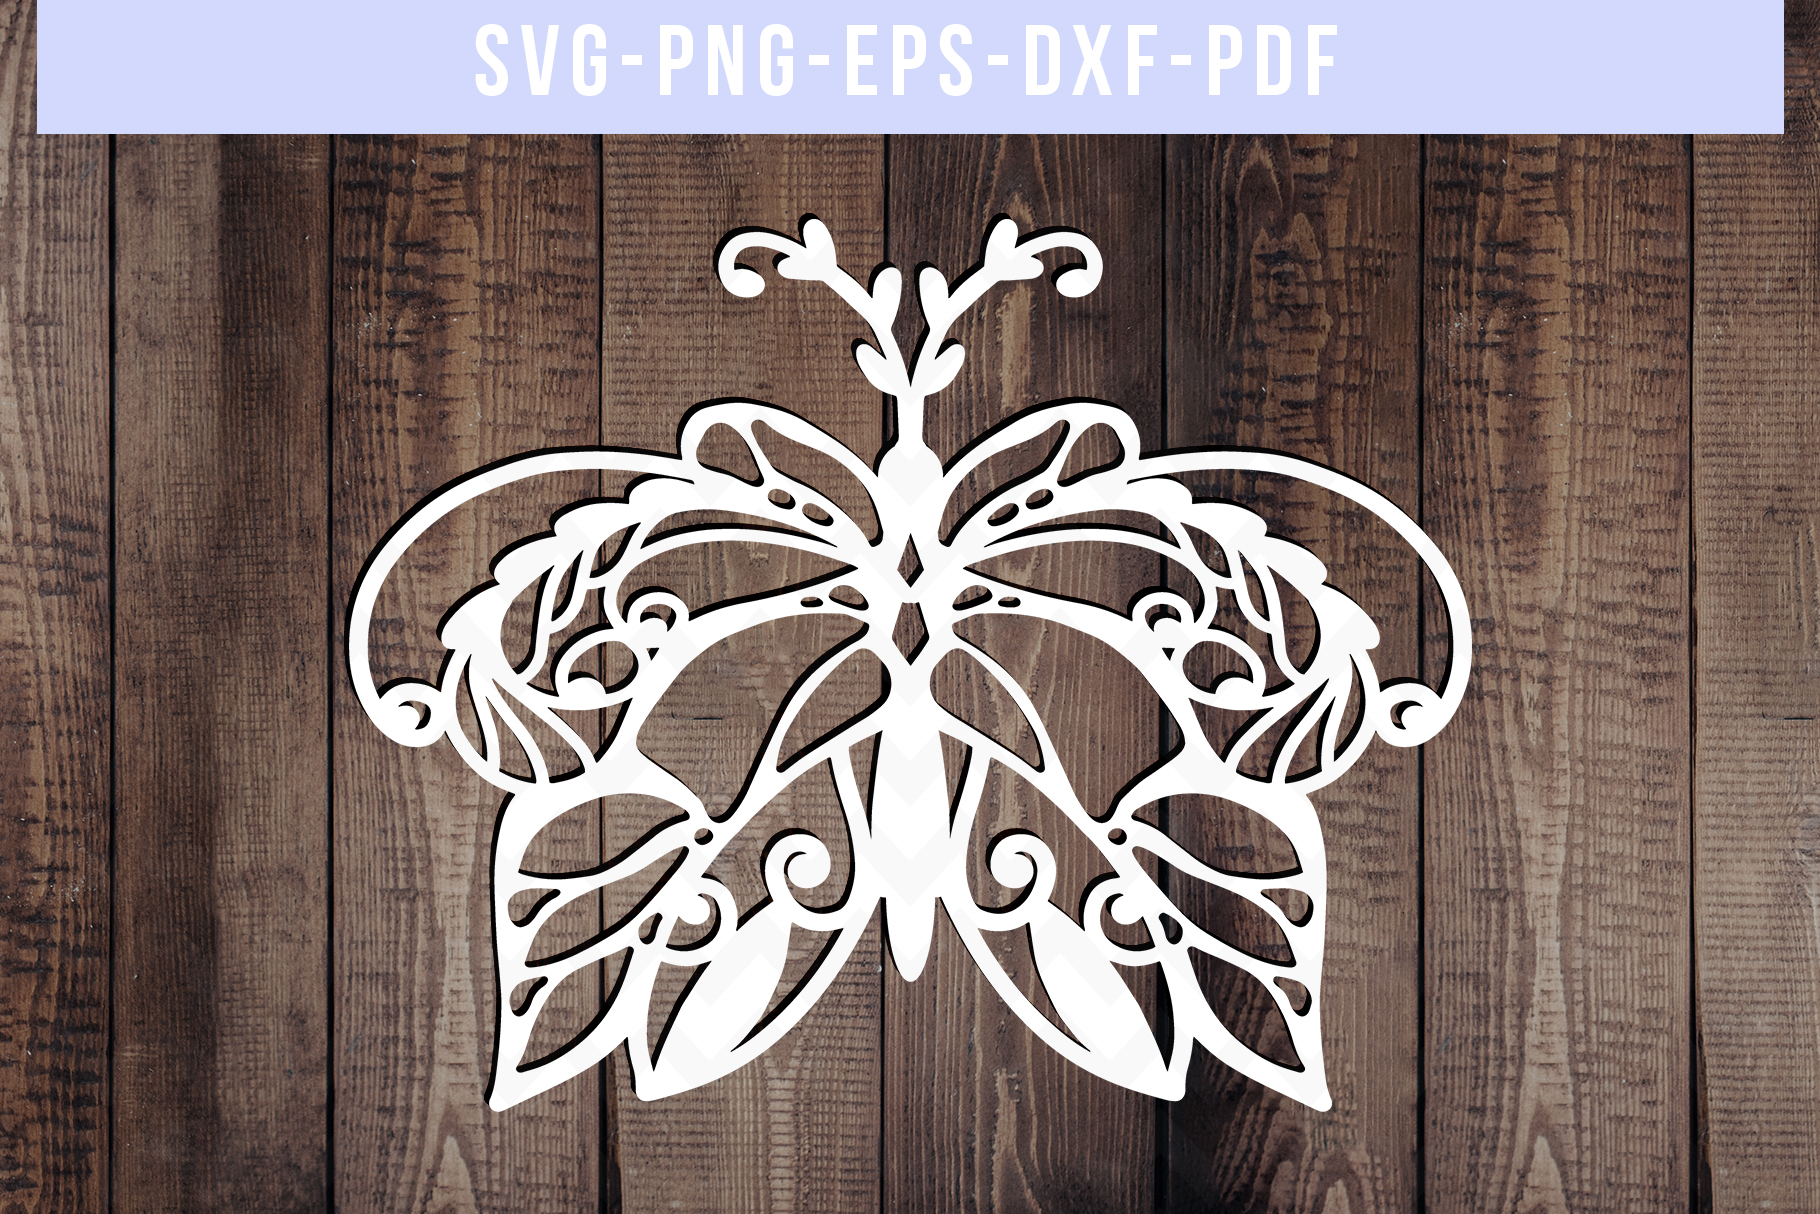 Bundle Of 9 Butterfly Papercut Templates, Paper Art DXF PDF example image 8